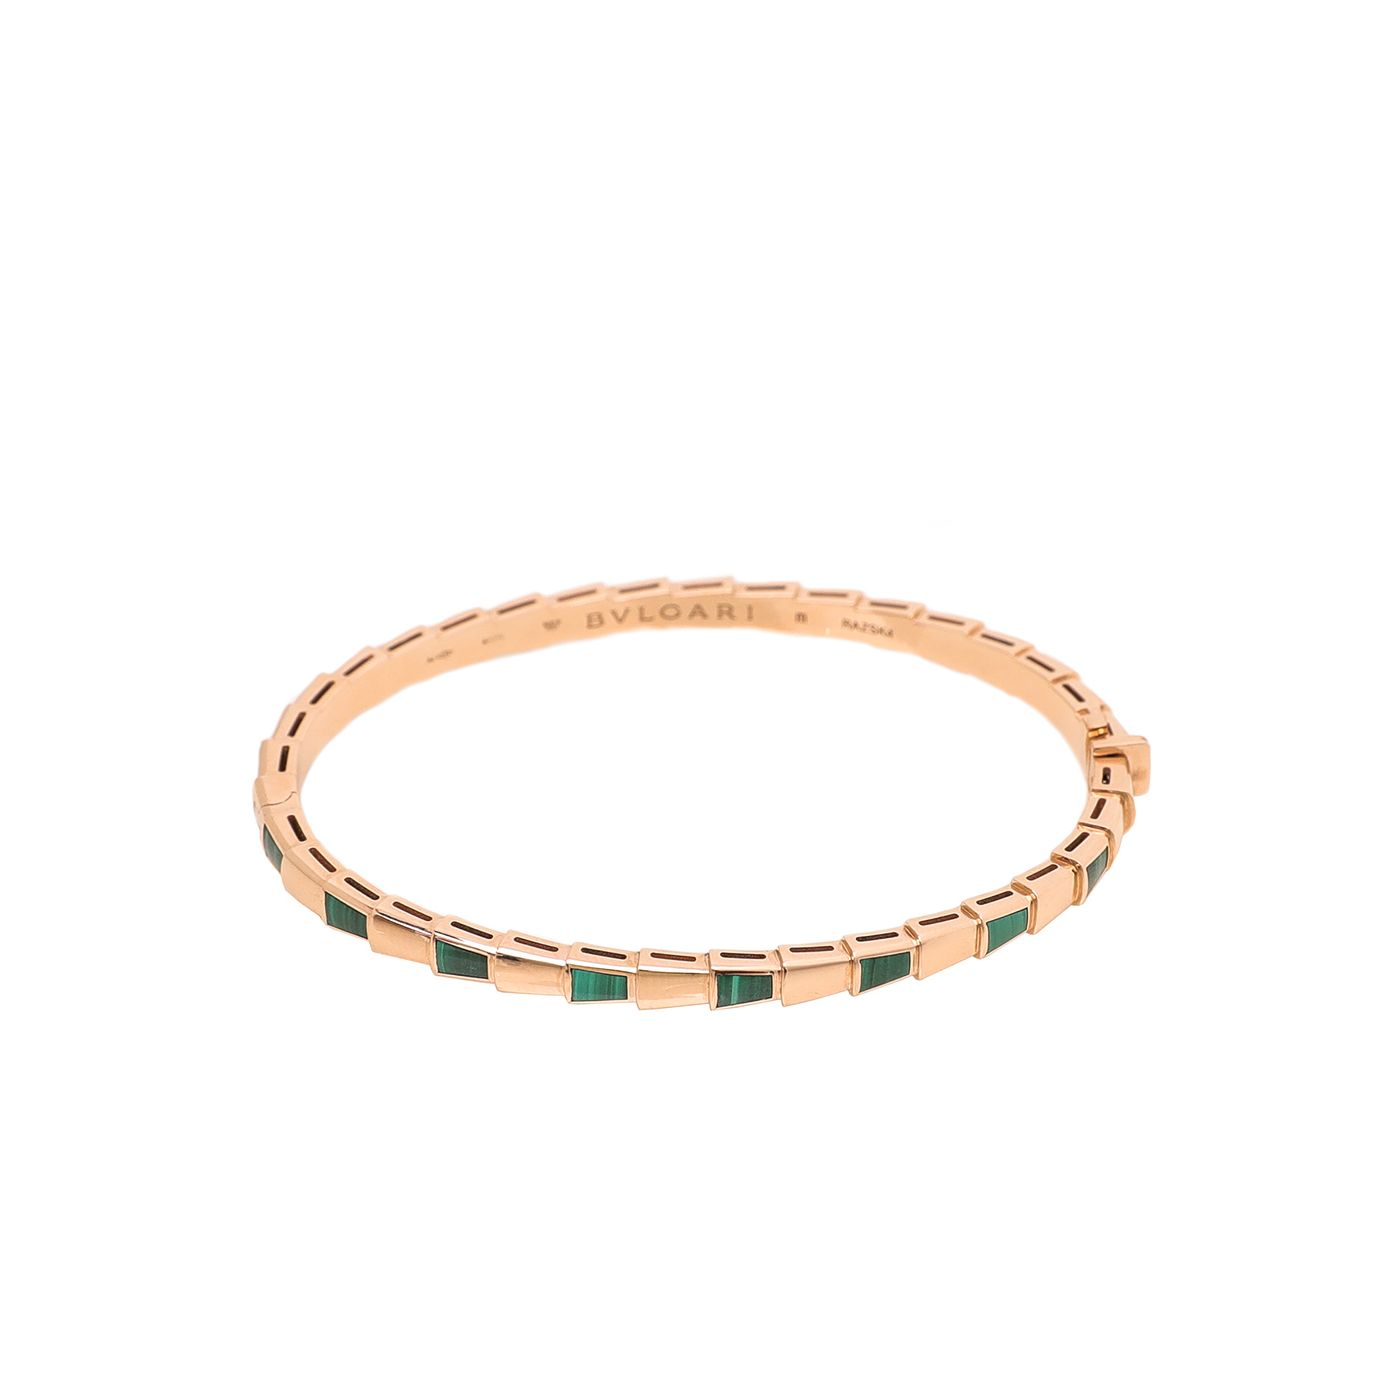 Bvlgari 18K Rose Gold Malachite Elements Serpenti Viper Bracelet Medium